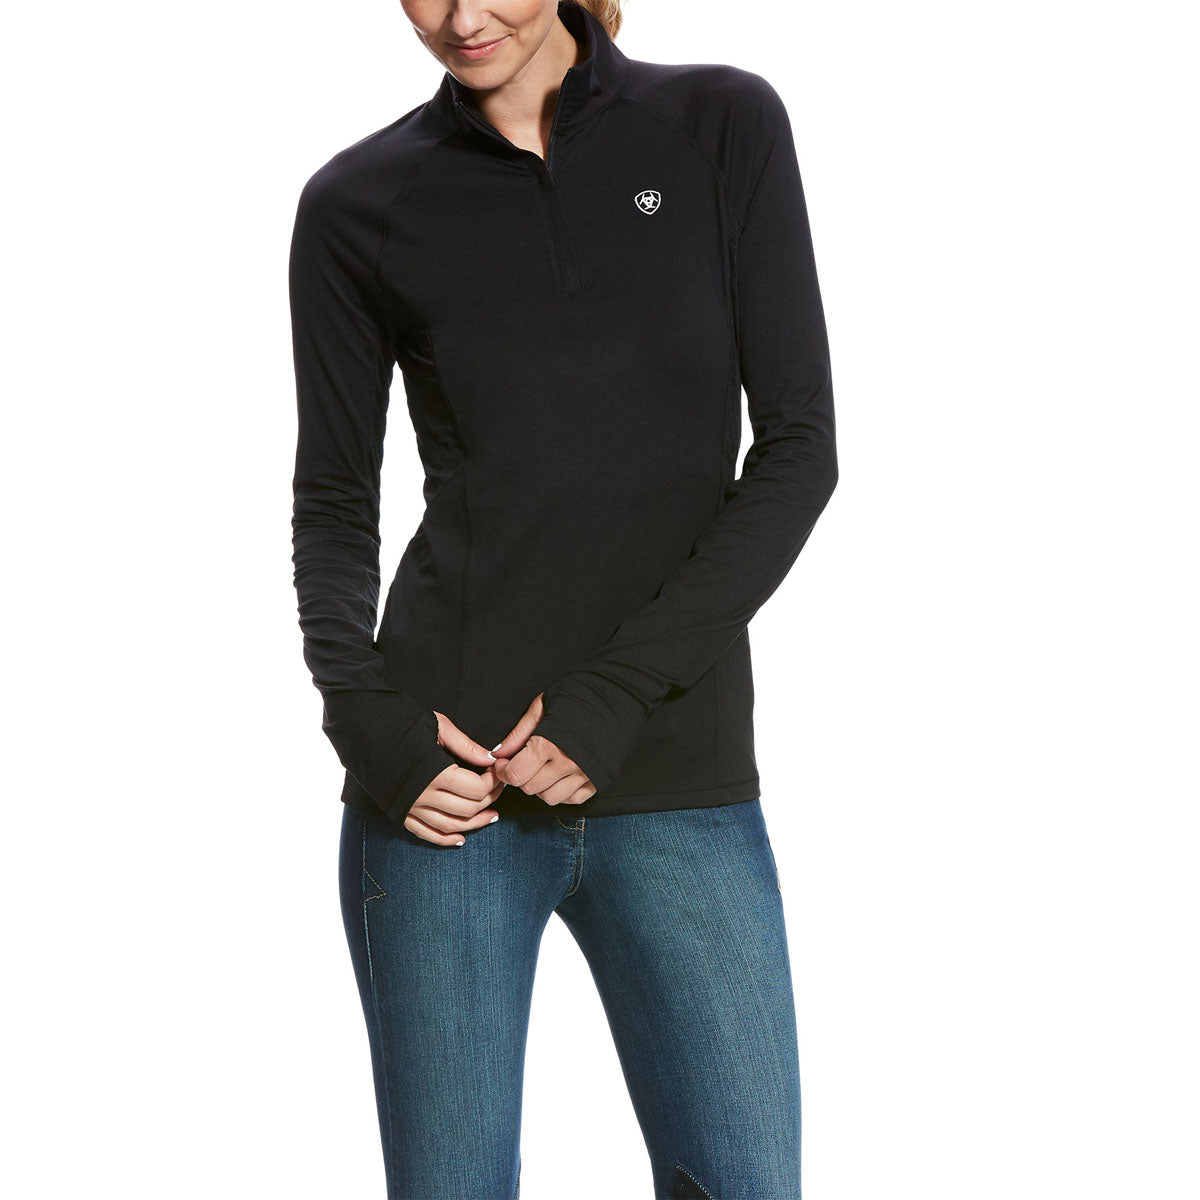 Ariat Women's Lowell 2.0 1/4 Zip Long Sleeve Baselayer Solids